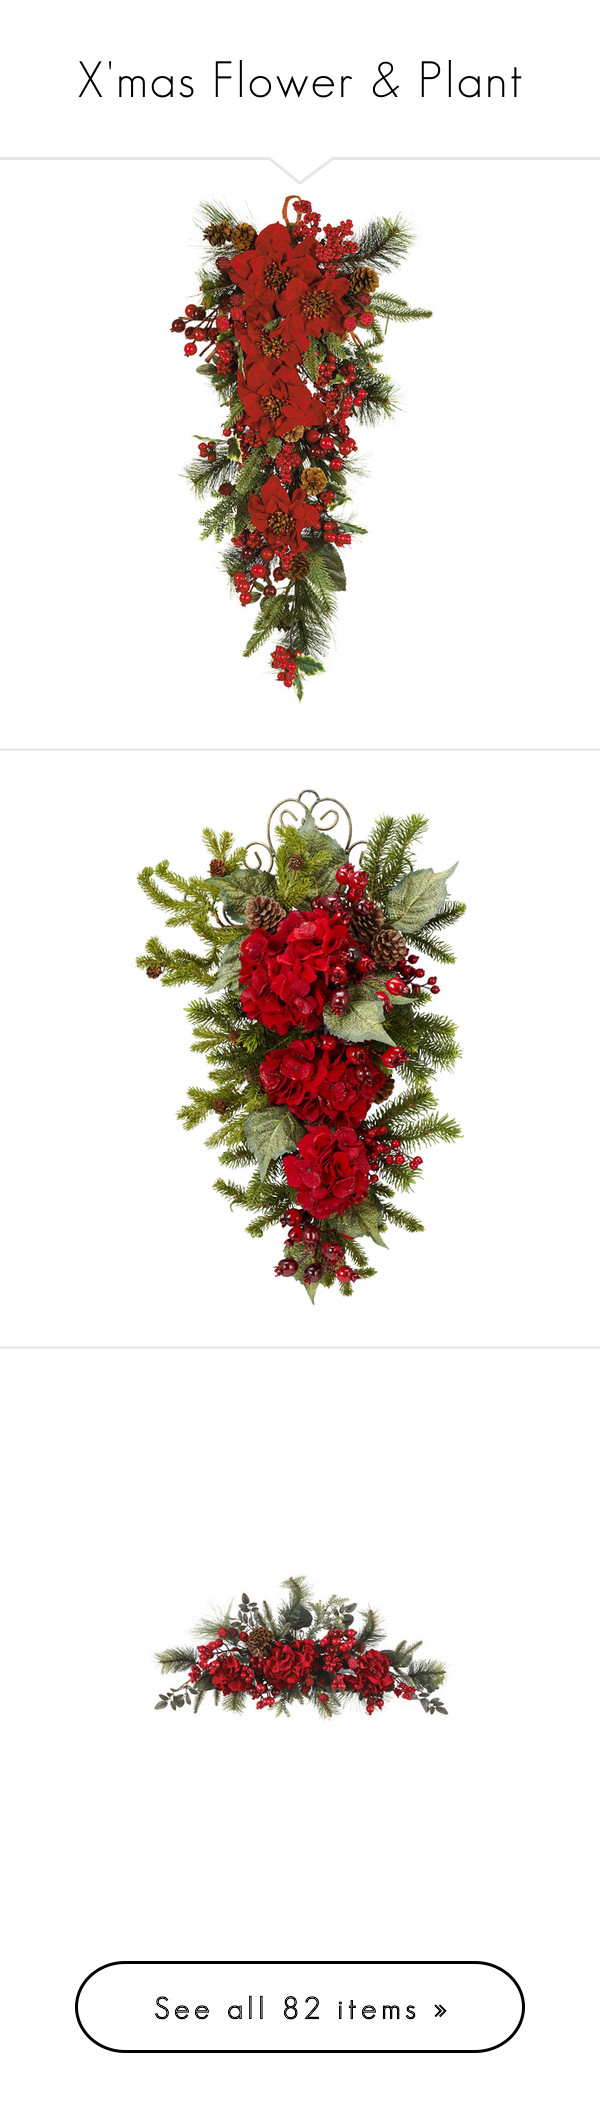 """X'mas Flower & Plant"" by papee ❤ liked on Polyvore featuring home, home decor, holiday decorations, christmas, flowers, holiday decor, holiday home decor, christmas home decor, flower stem and christmas holiday decorations"